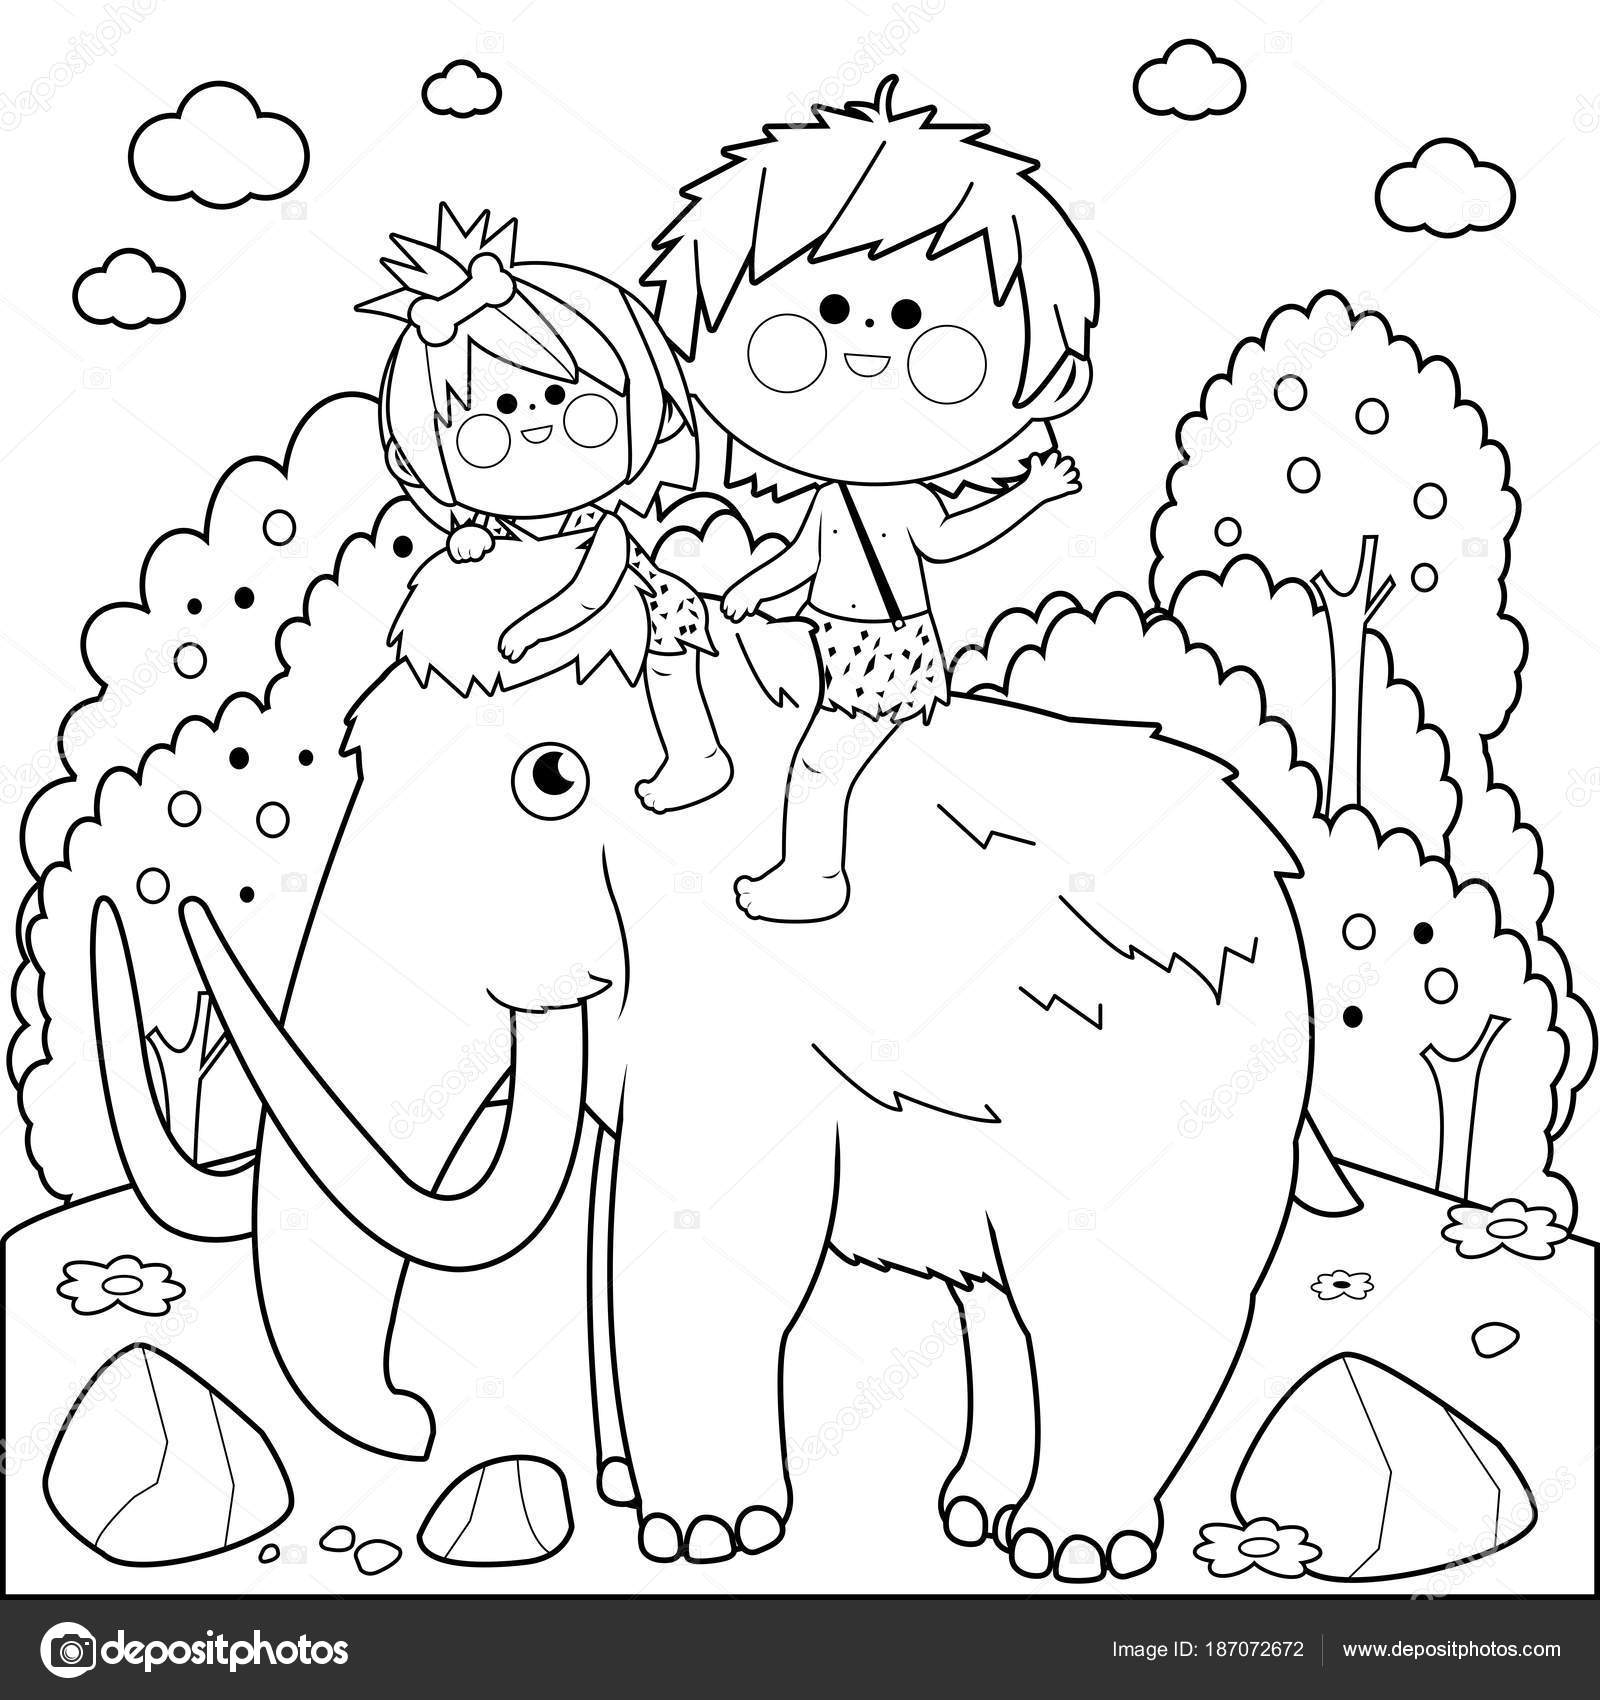 Dinosaur Coloring Pages | Printable Mastodon coloring page and ... | 1700x1600